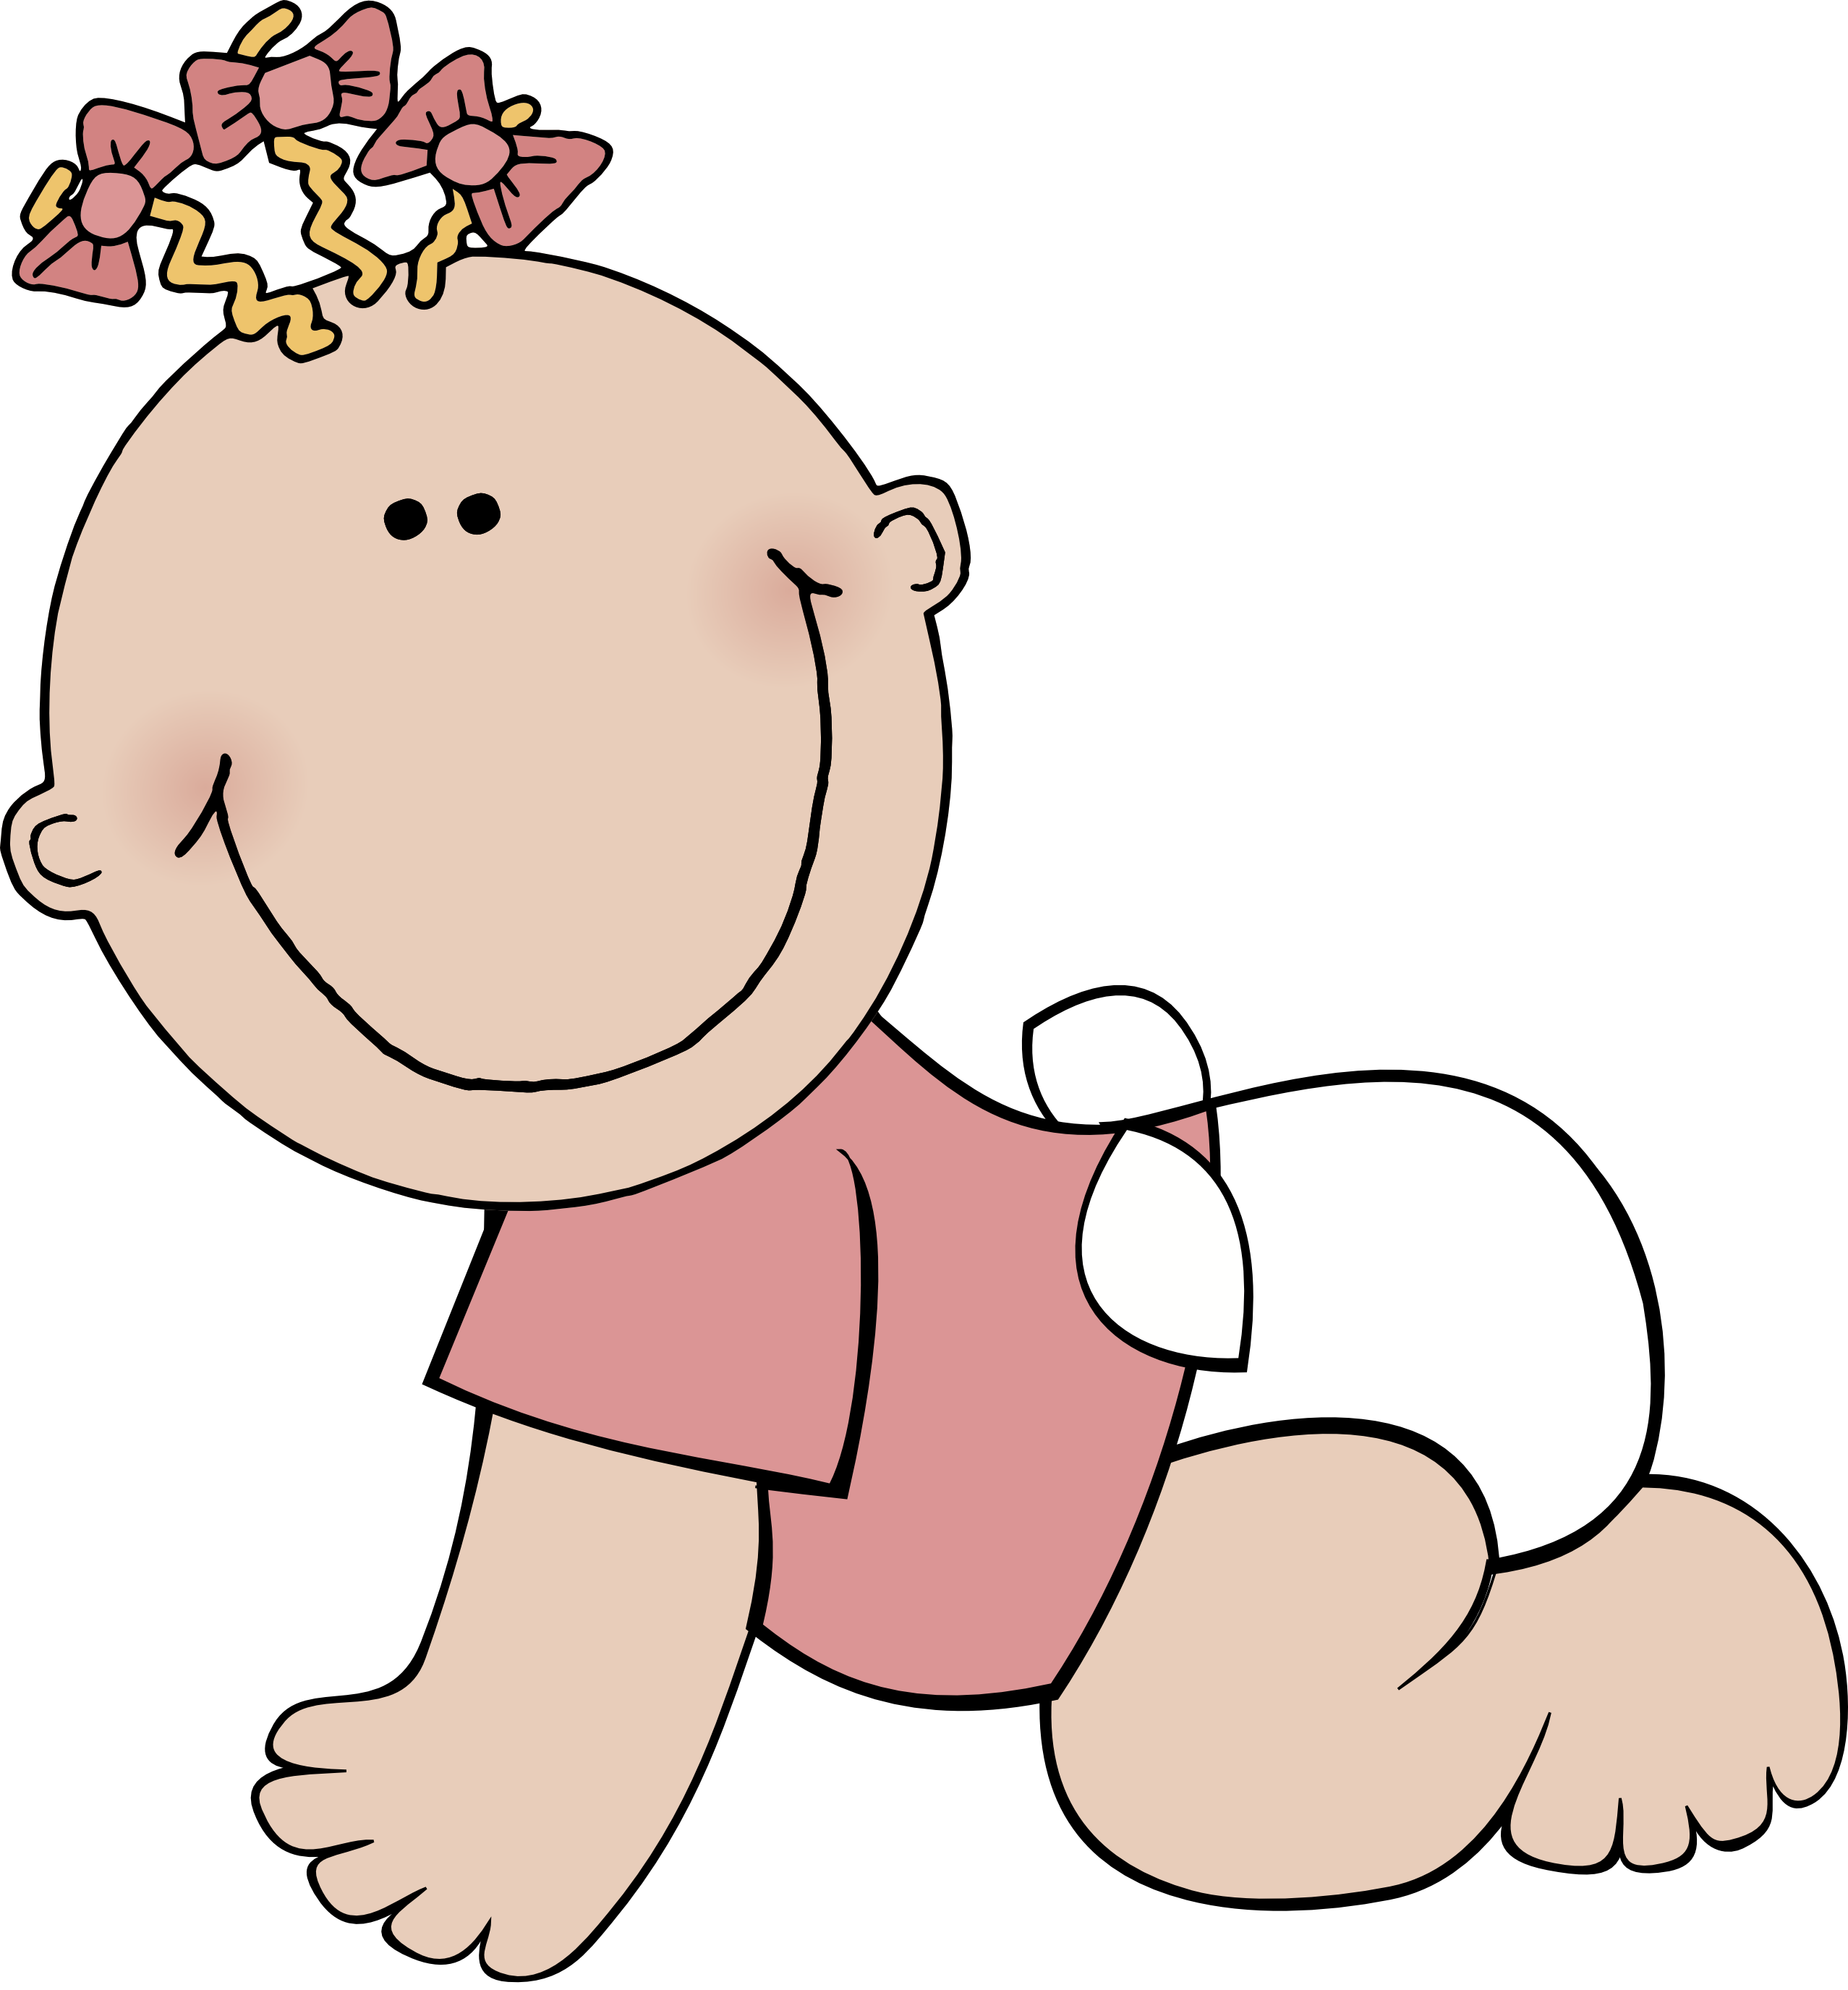 Free Baby Cliparts, Download Free Clip Art, Free Clip Art on.